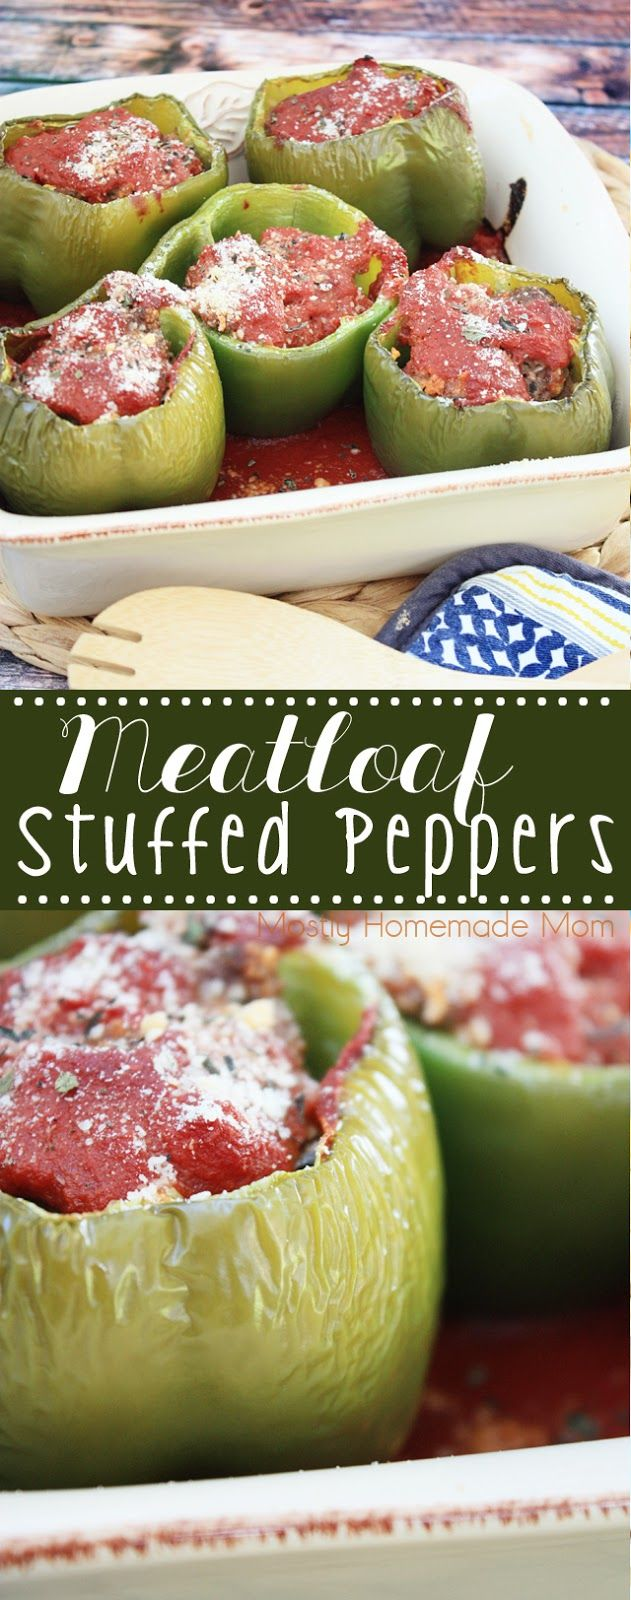 Meatloaf Stuffed Peppers - the perfect favorite dinner recipe mashup! If your family loves stuffed peppers and meatloaf, they'll go crazy for this dinner idea!